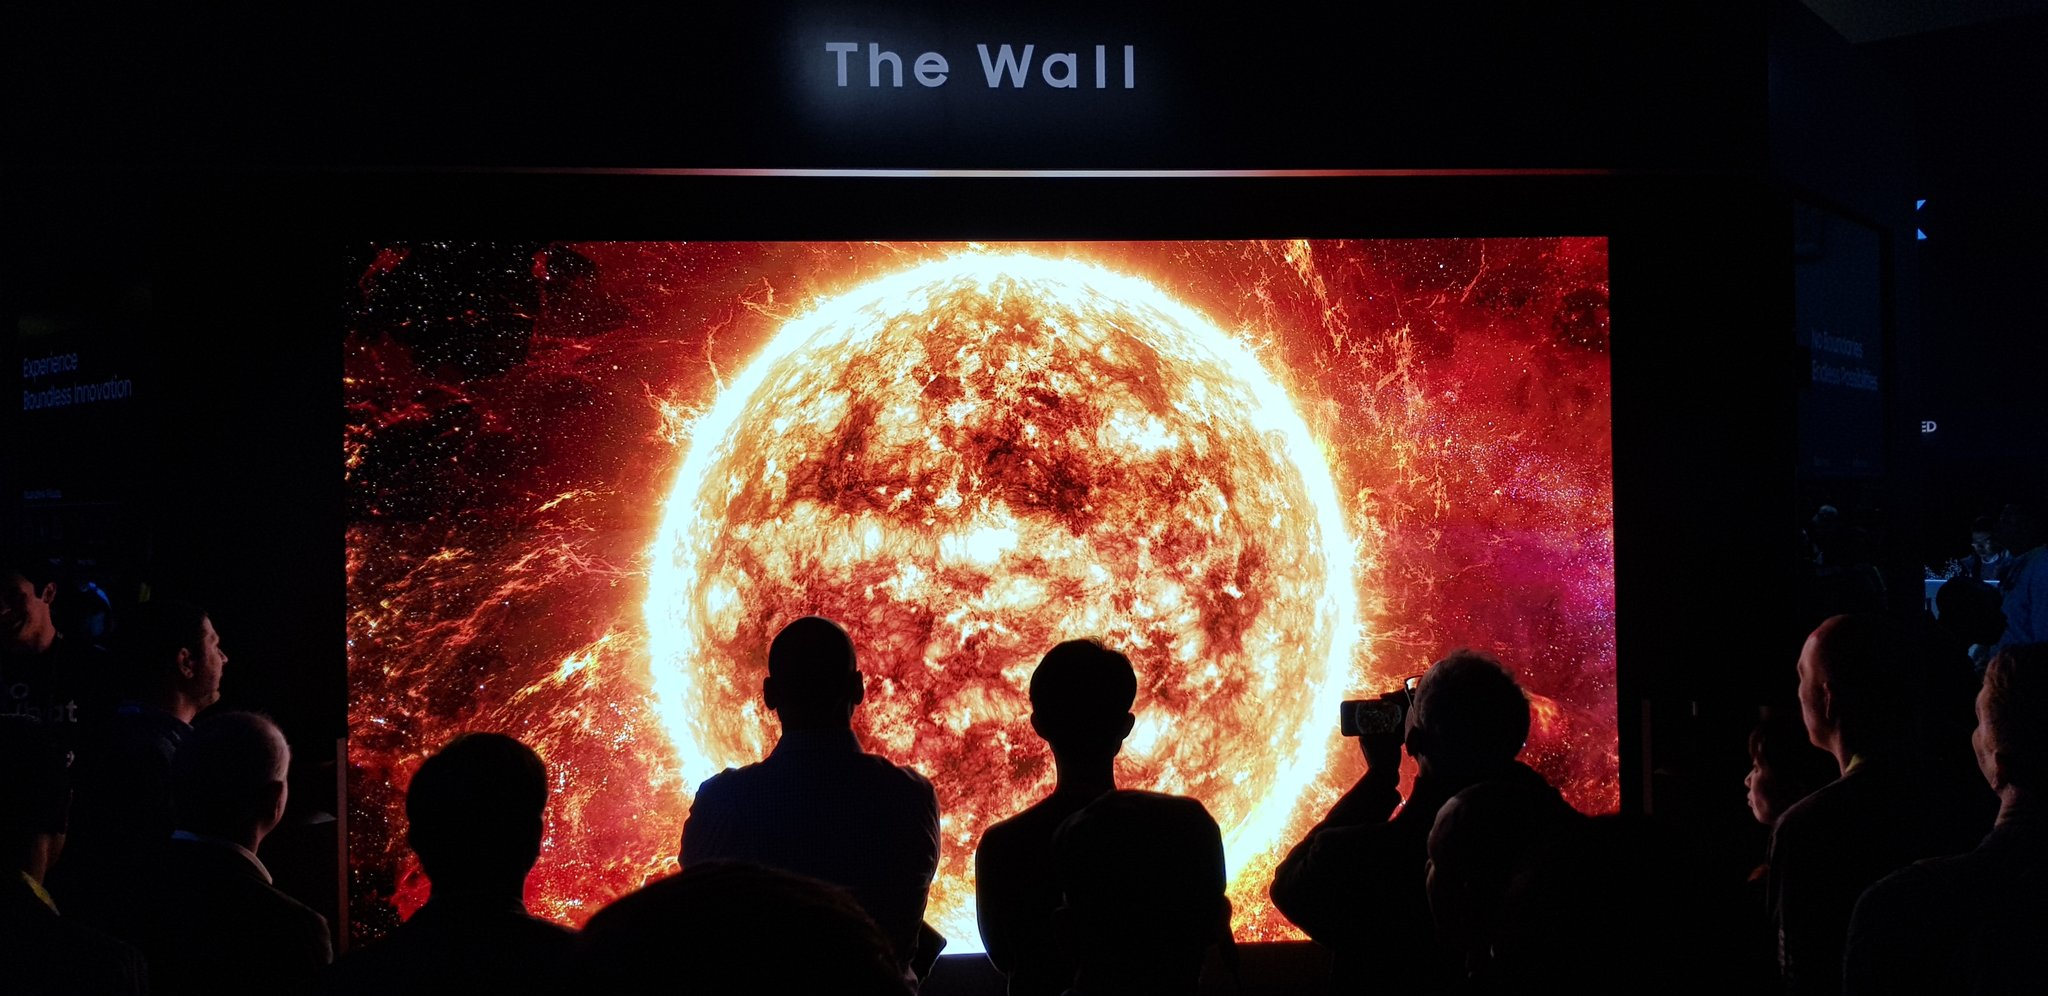 samsung-the-wall-ces-2019